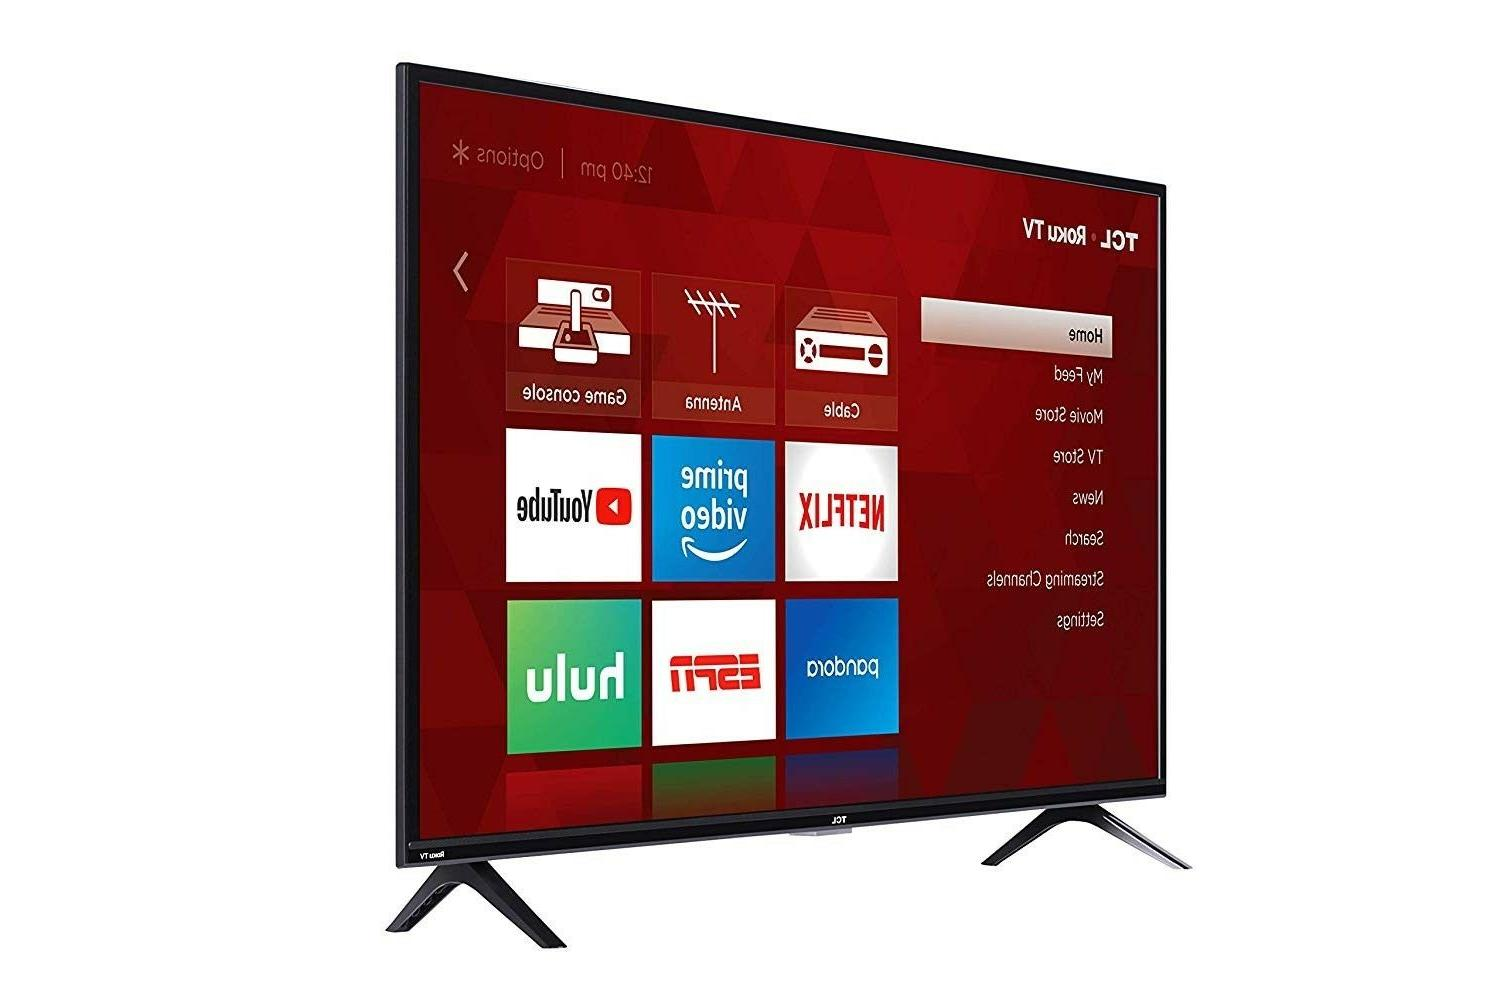 NEW - 40S325 40 Inch 1080p 2 DAY